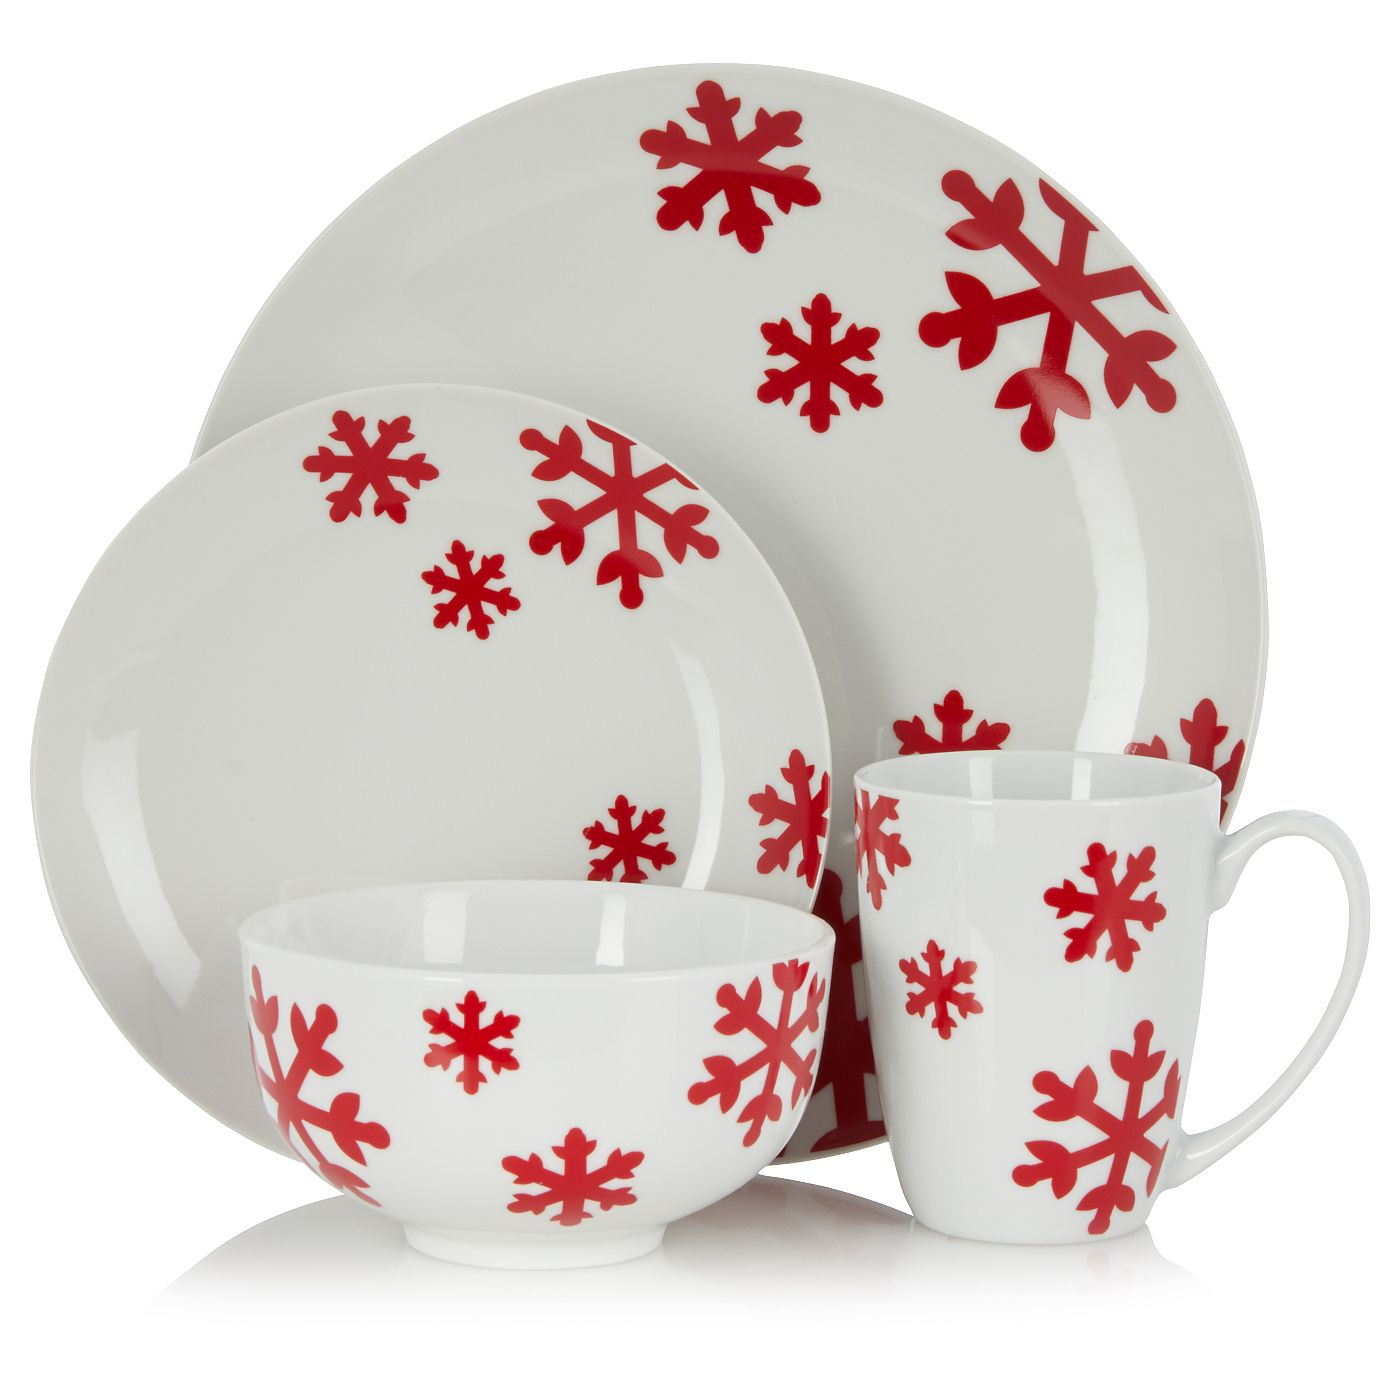 George Home 16 Piece Snowflake Dinner Set Tableware Asda Direct Christmas Dishes Dinner Sets George Home